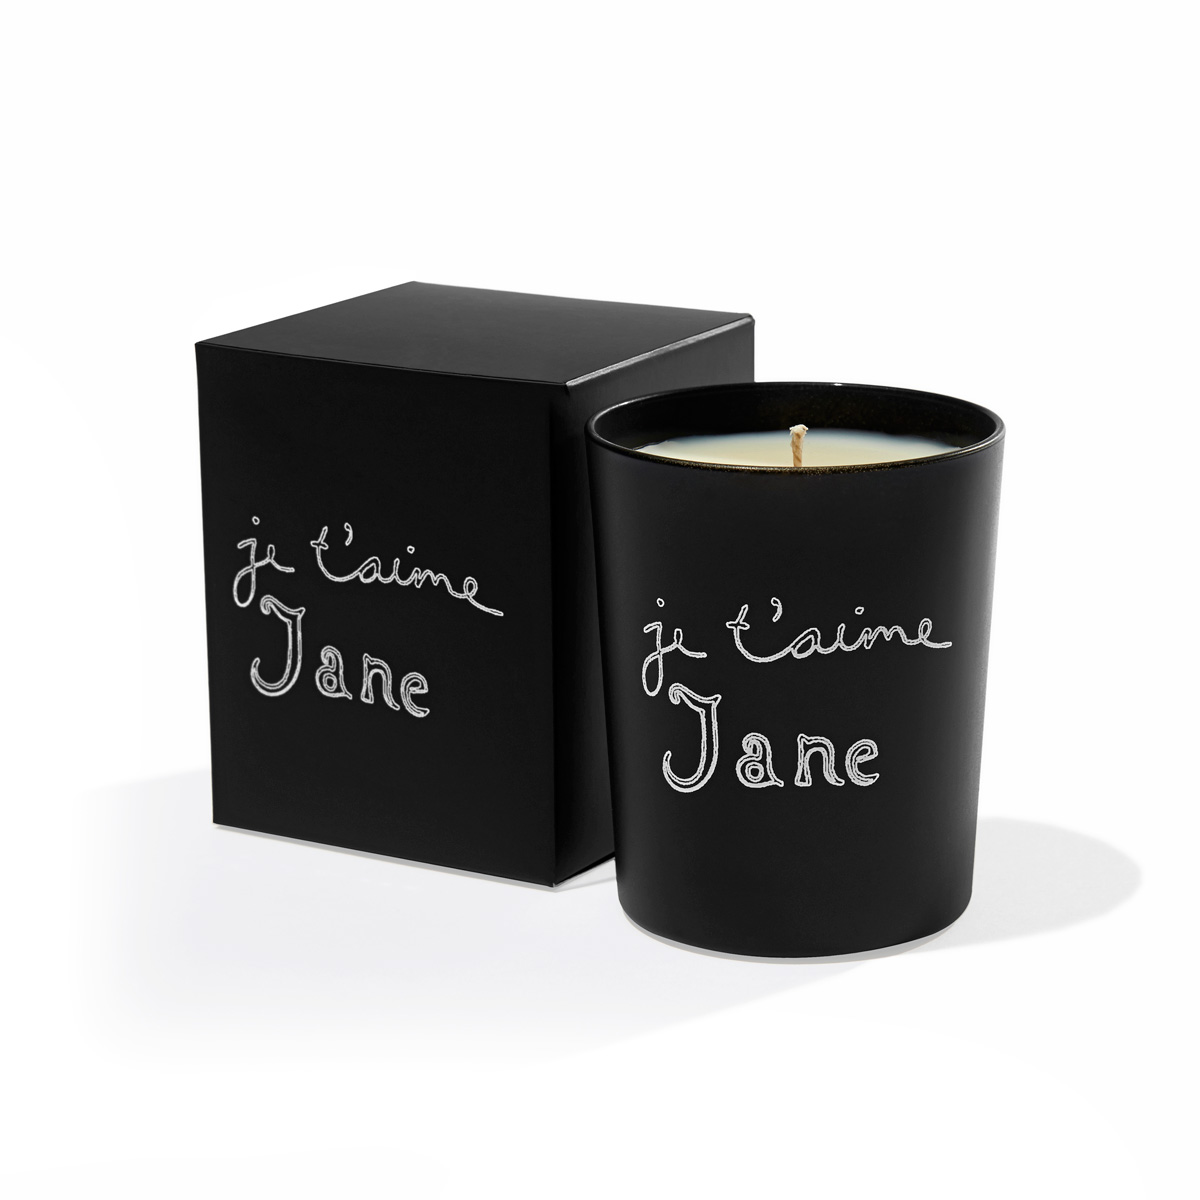 Bella Freud Candle Je t'aime Jane